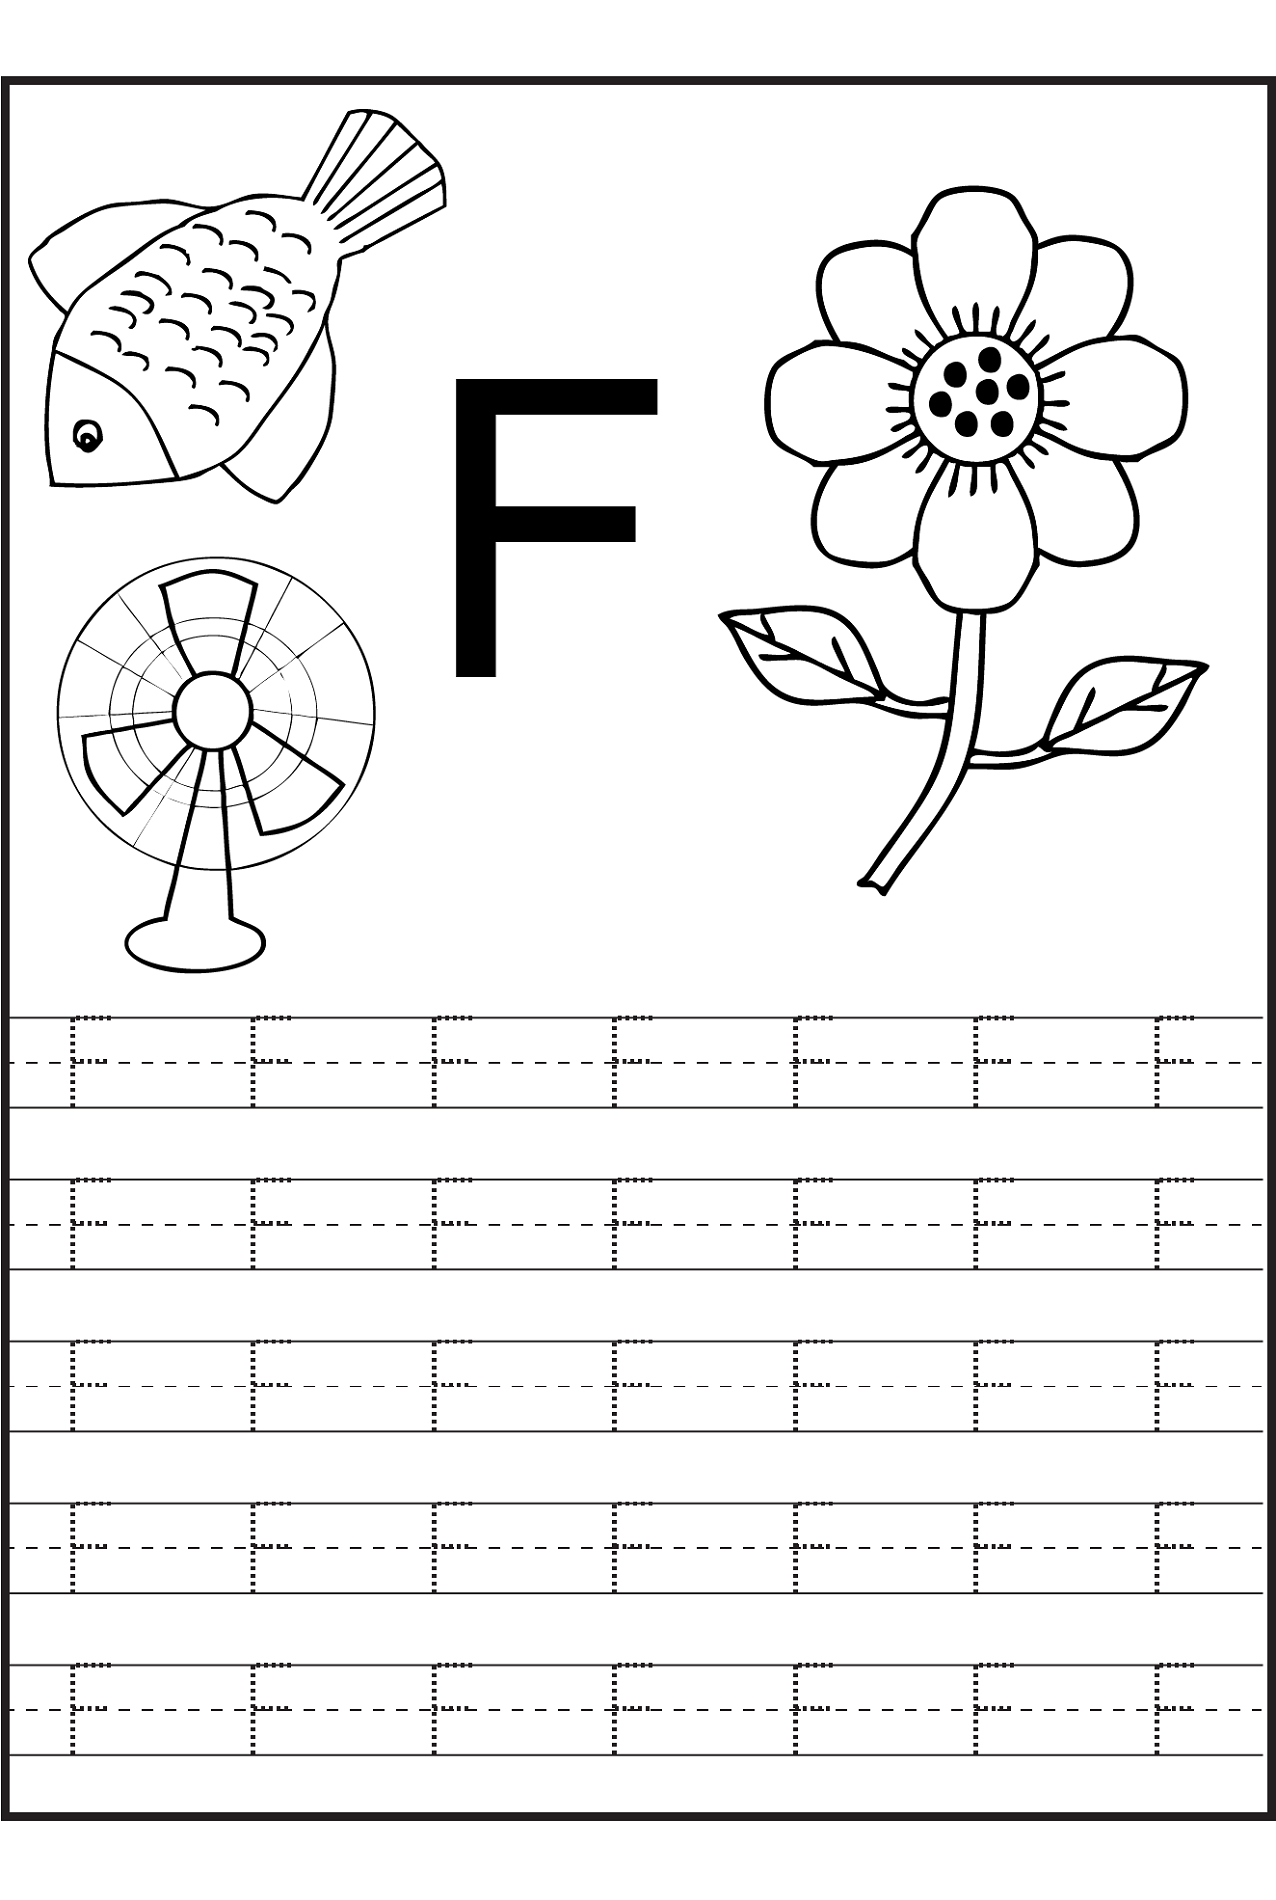 Worksheets : Writing Alphabet Letters Worksheets Chinese with Tracing Letter S Worksheets For Kindergarten